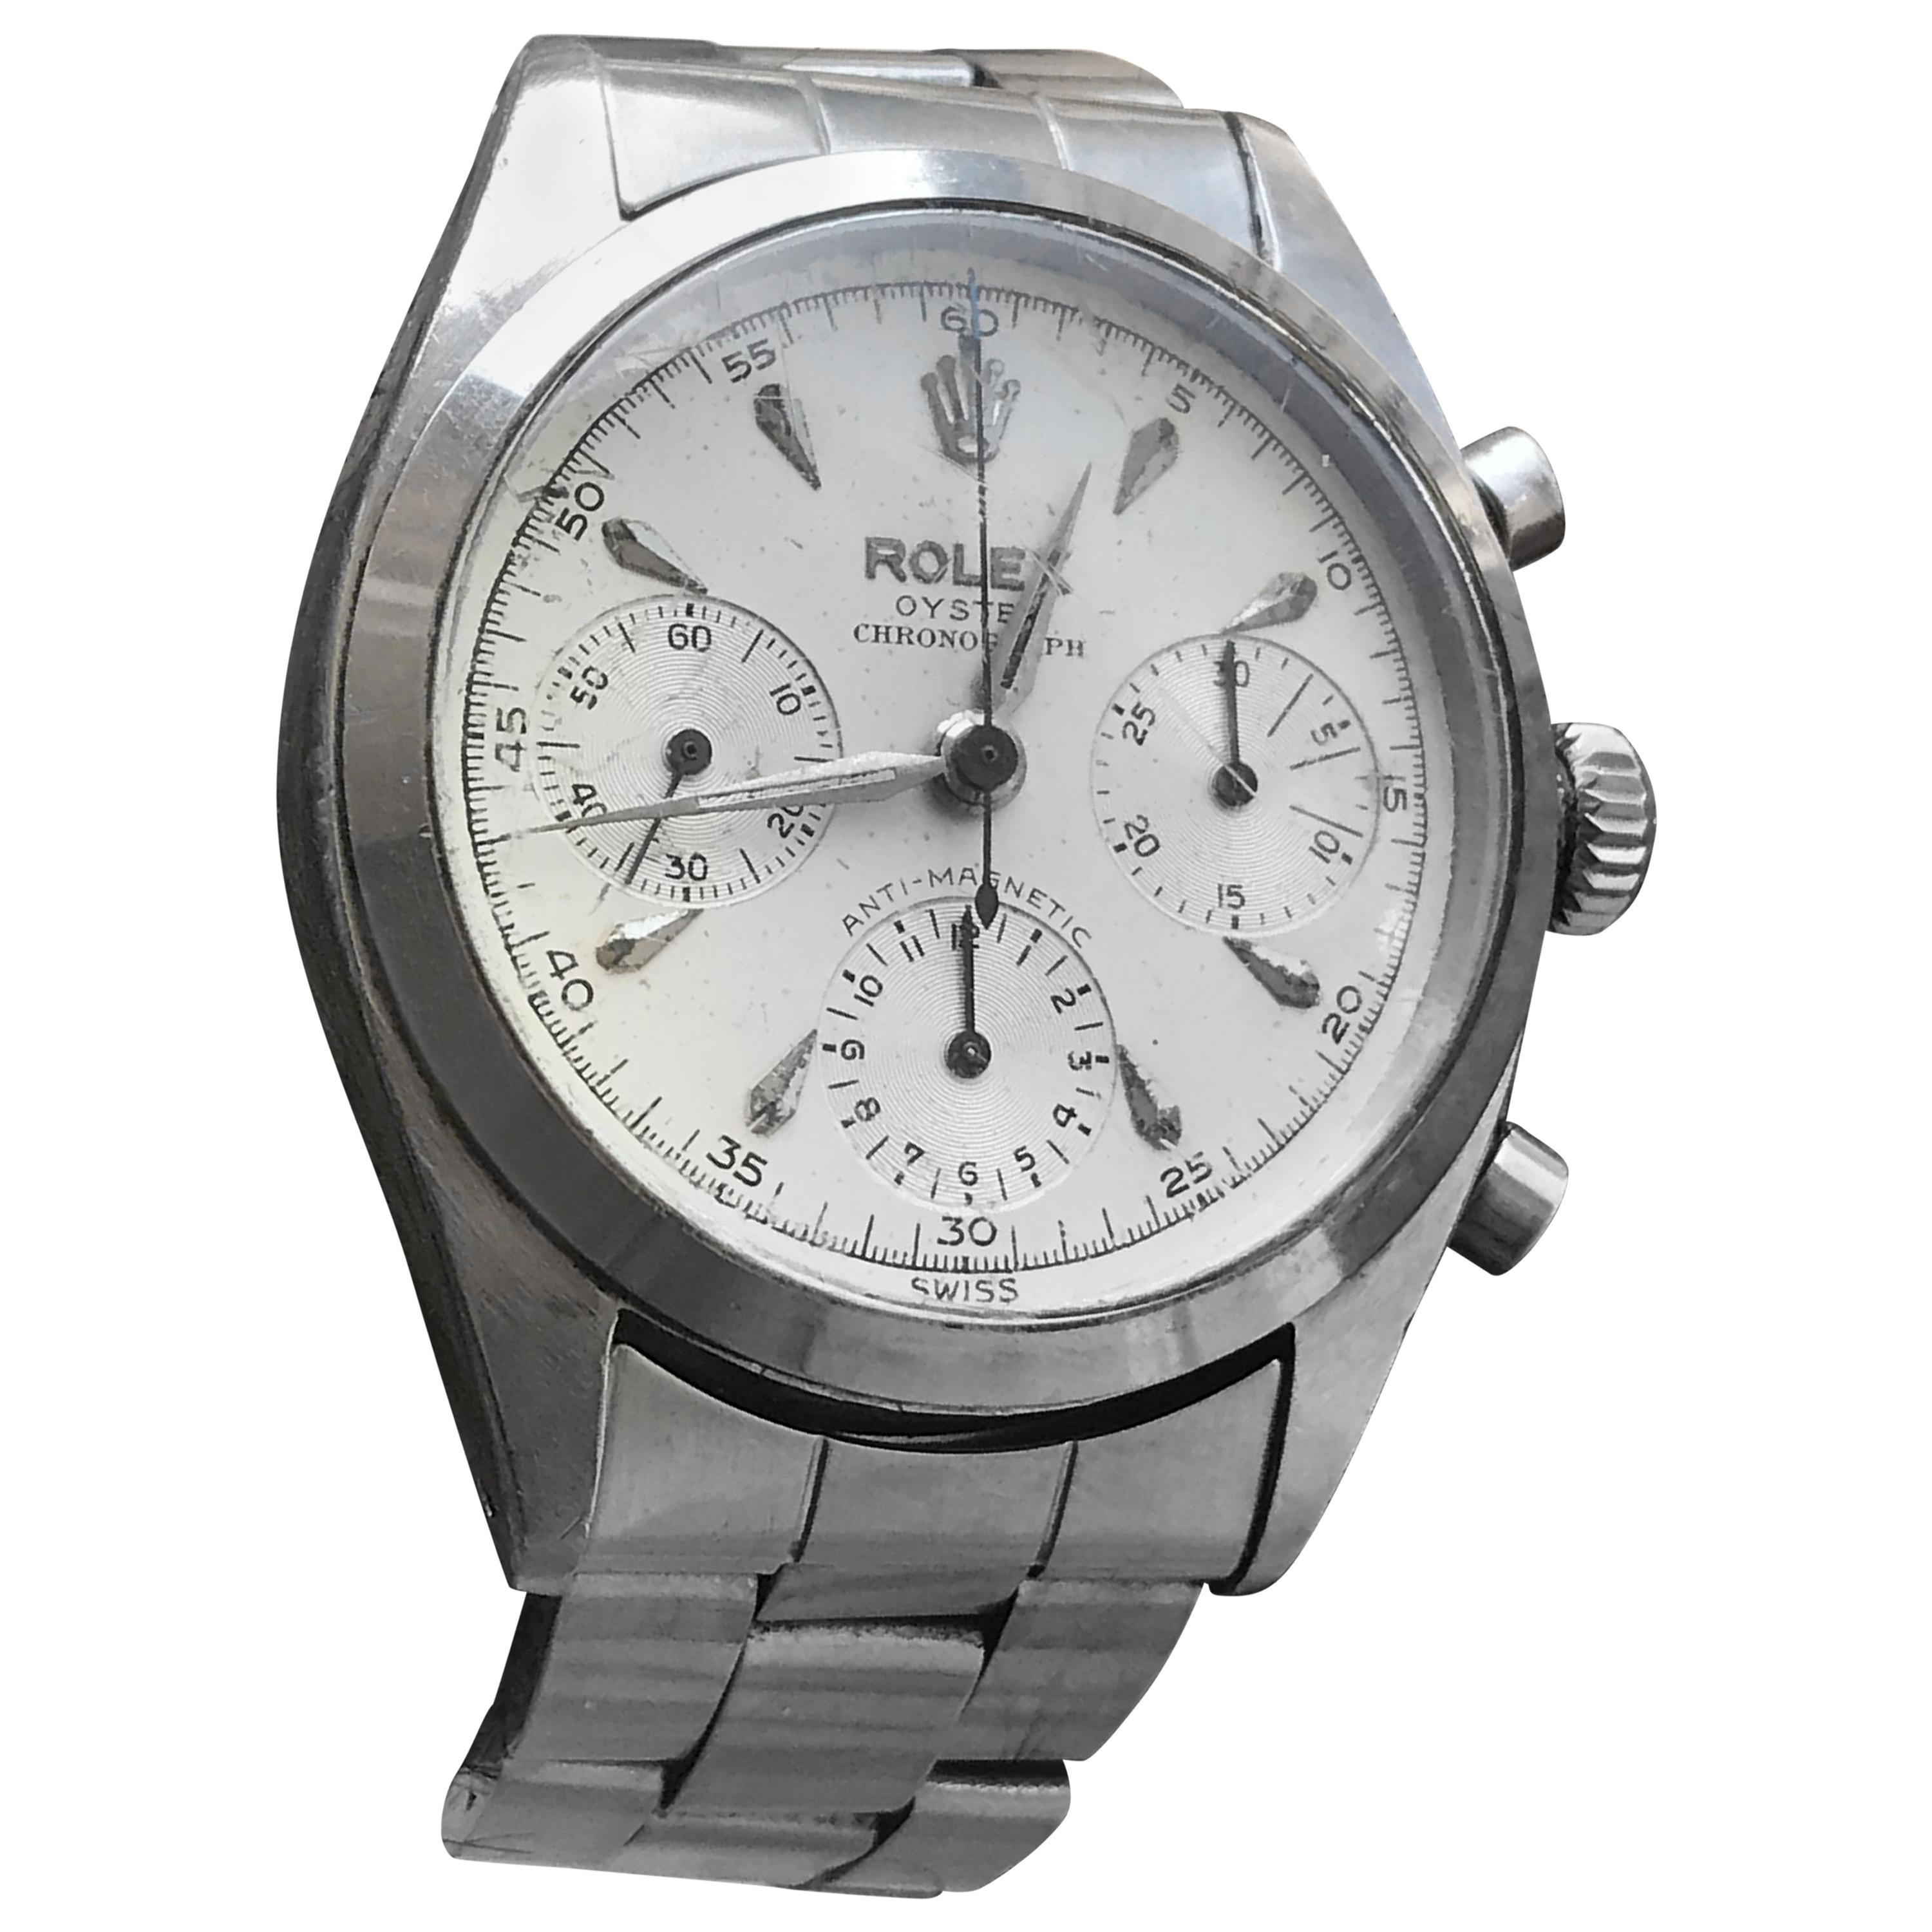 64fae0f3fcd Rolex Men's Stainless Steel 6234 Pre Daytona Anti Magnetic For Sale at  1stdibs